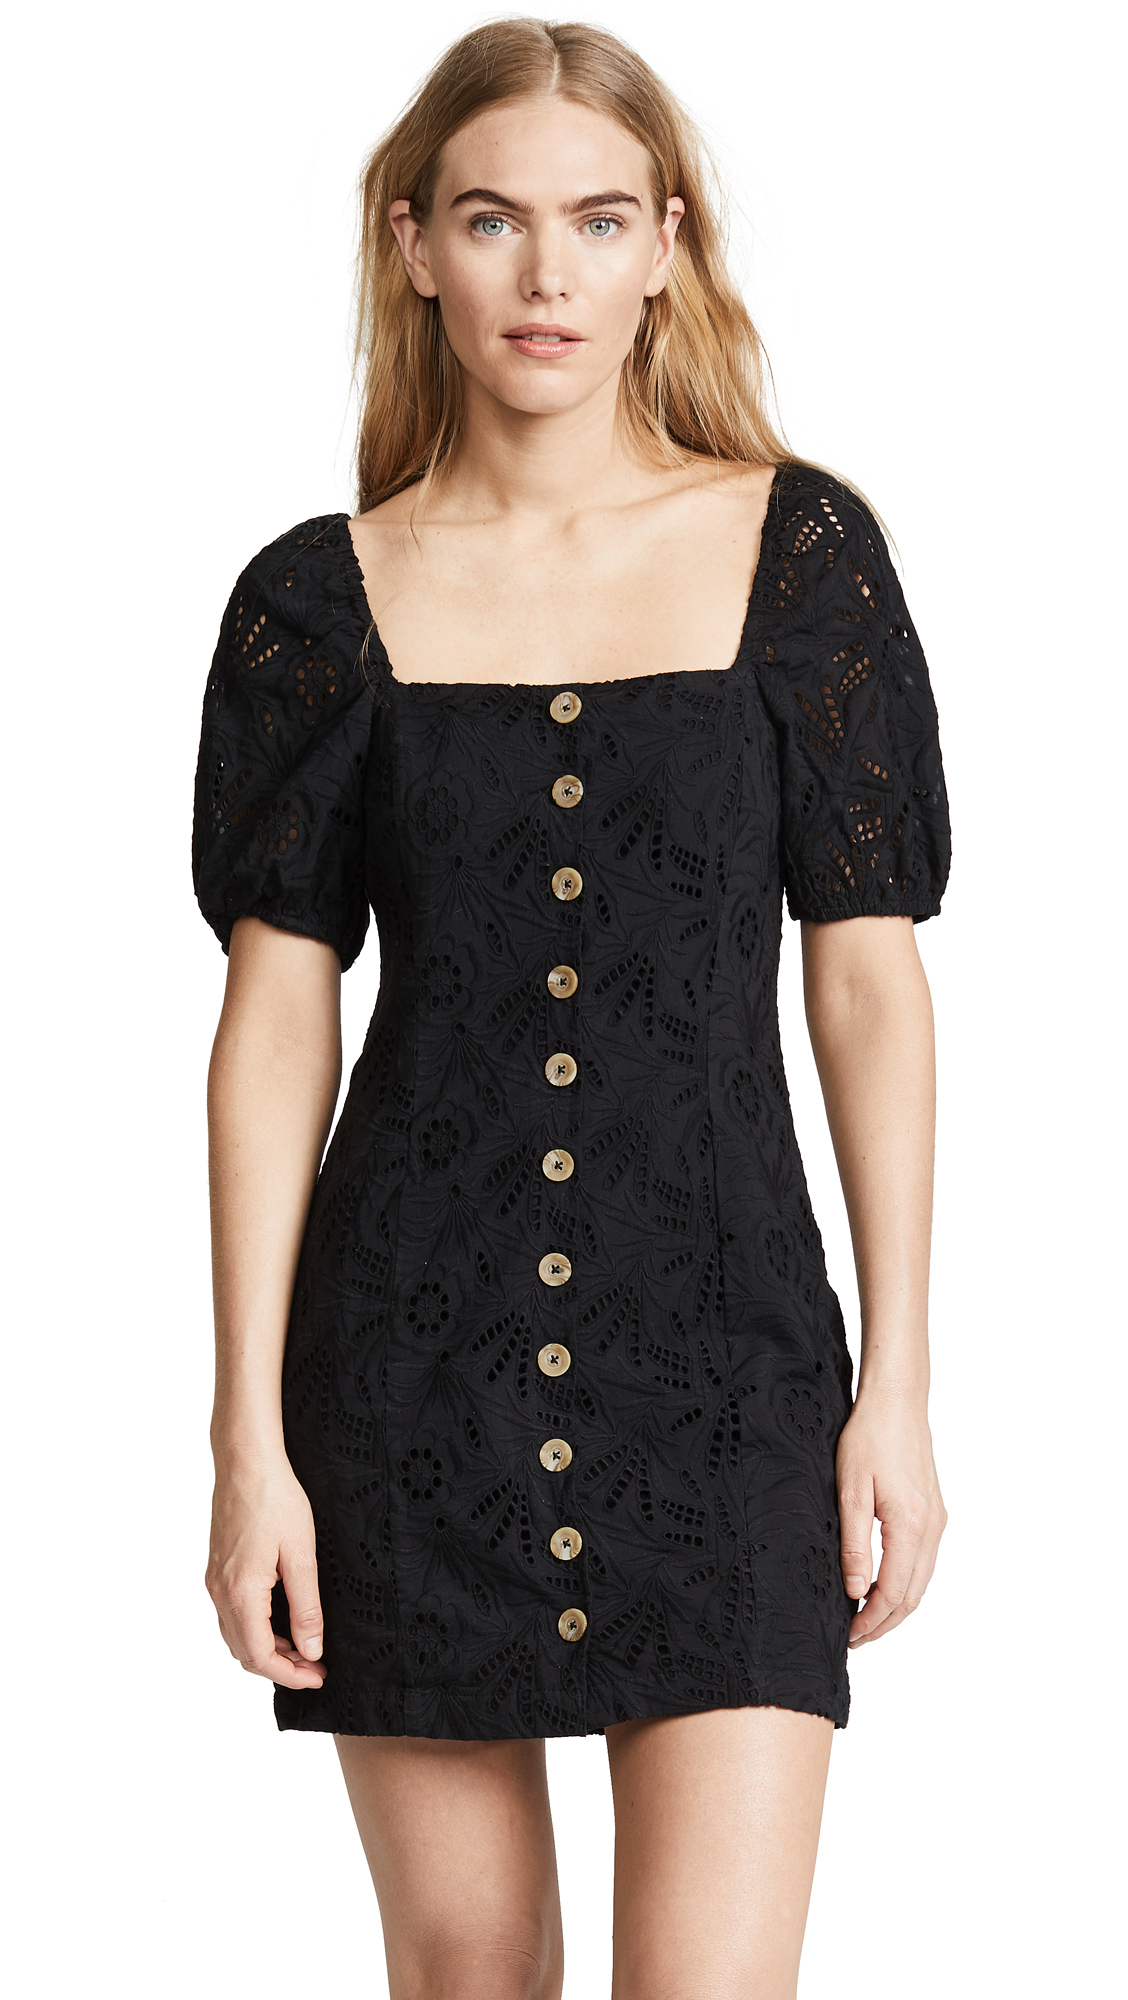 Free People Danielle Mini Dress